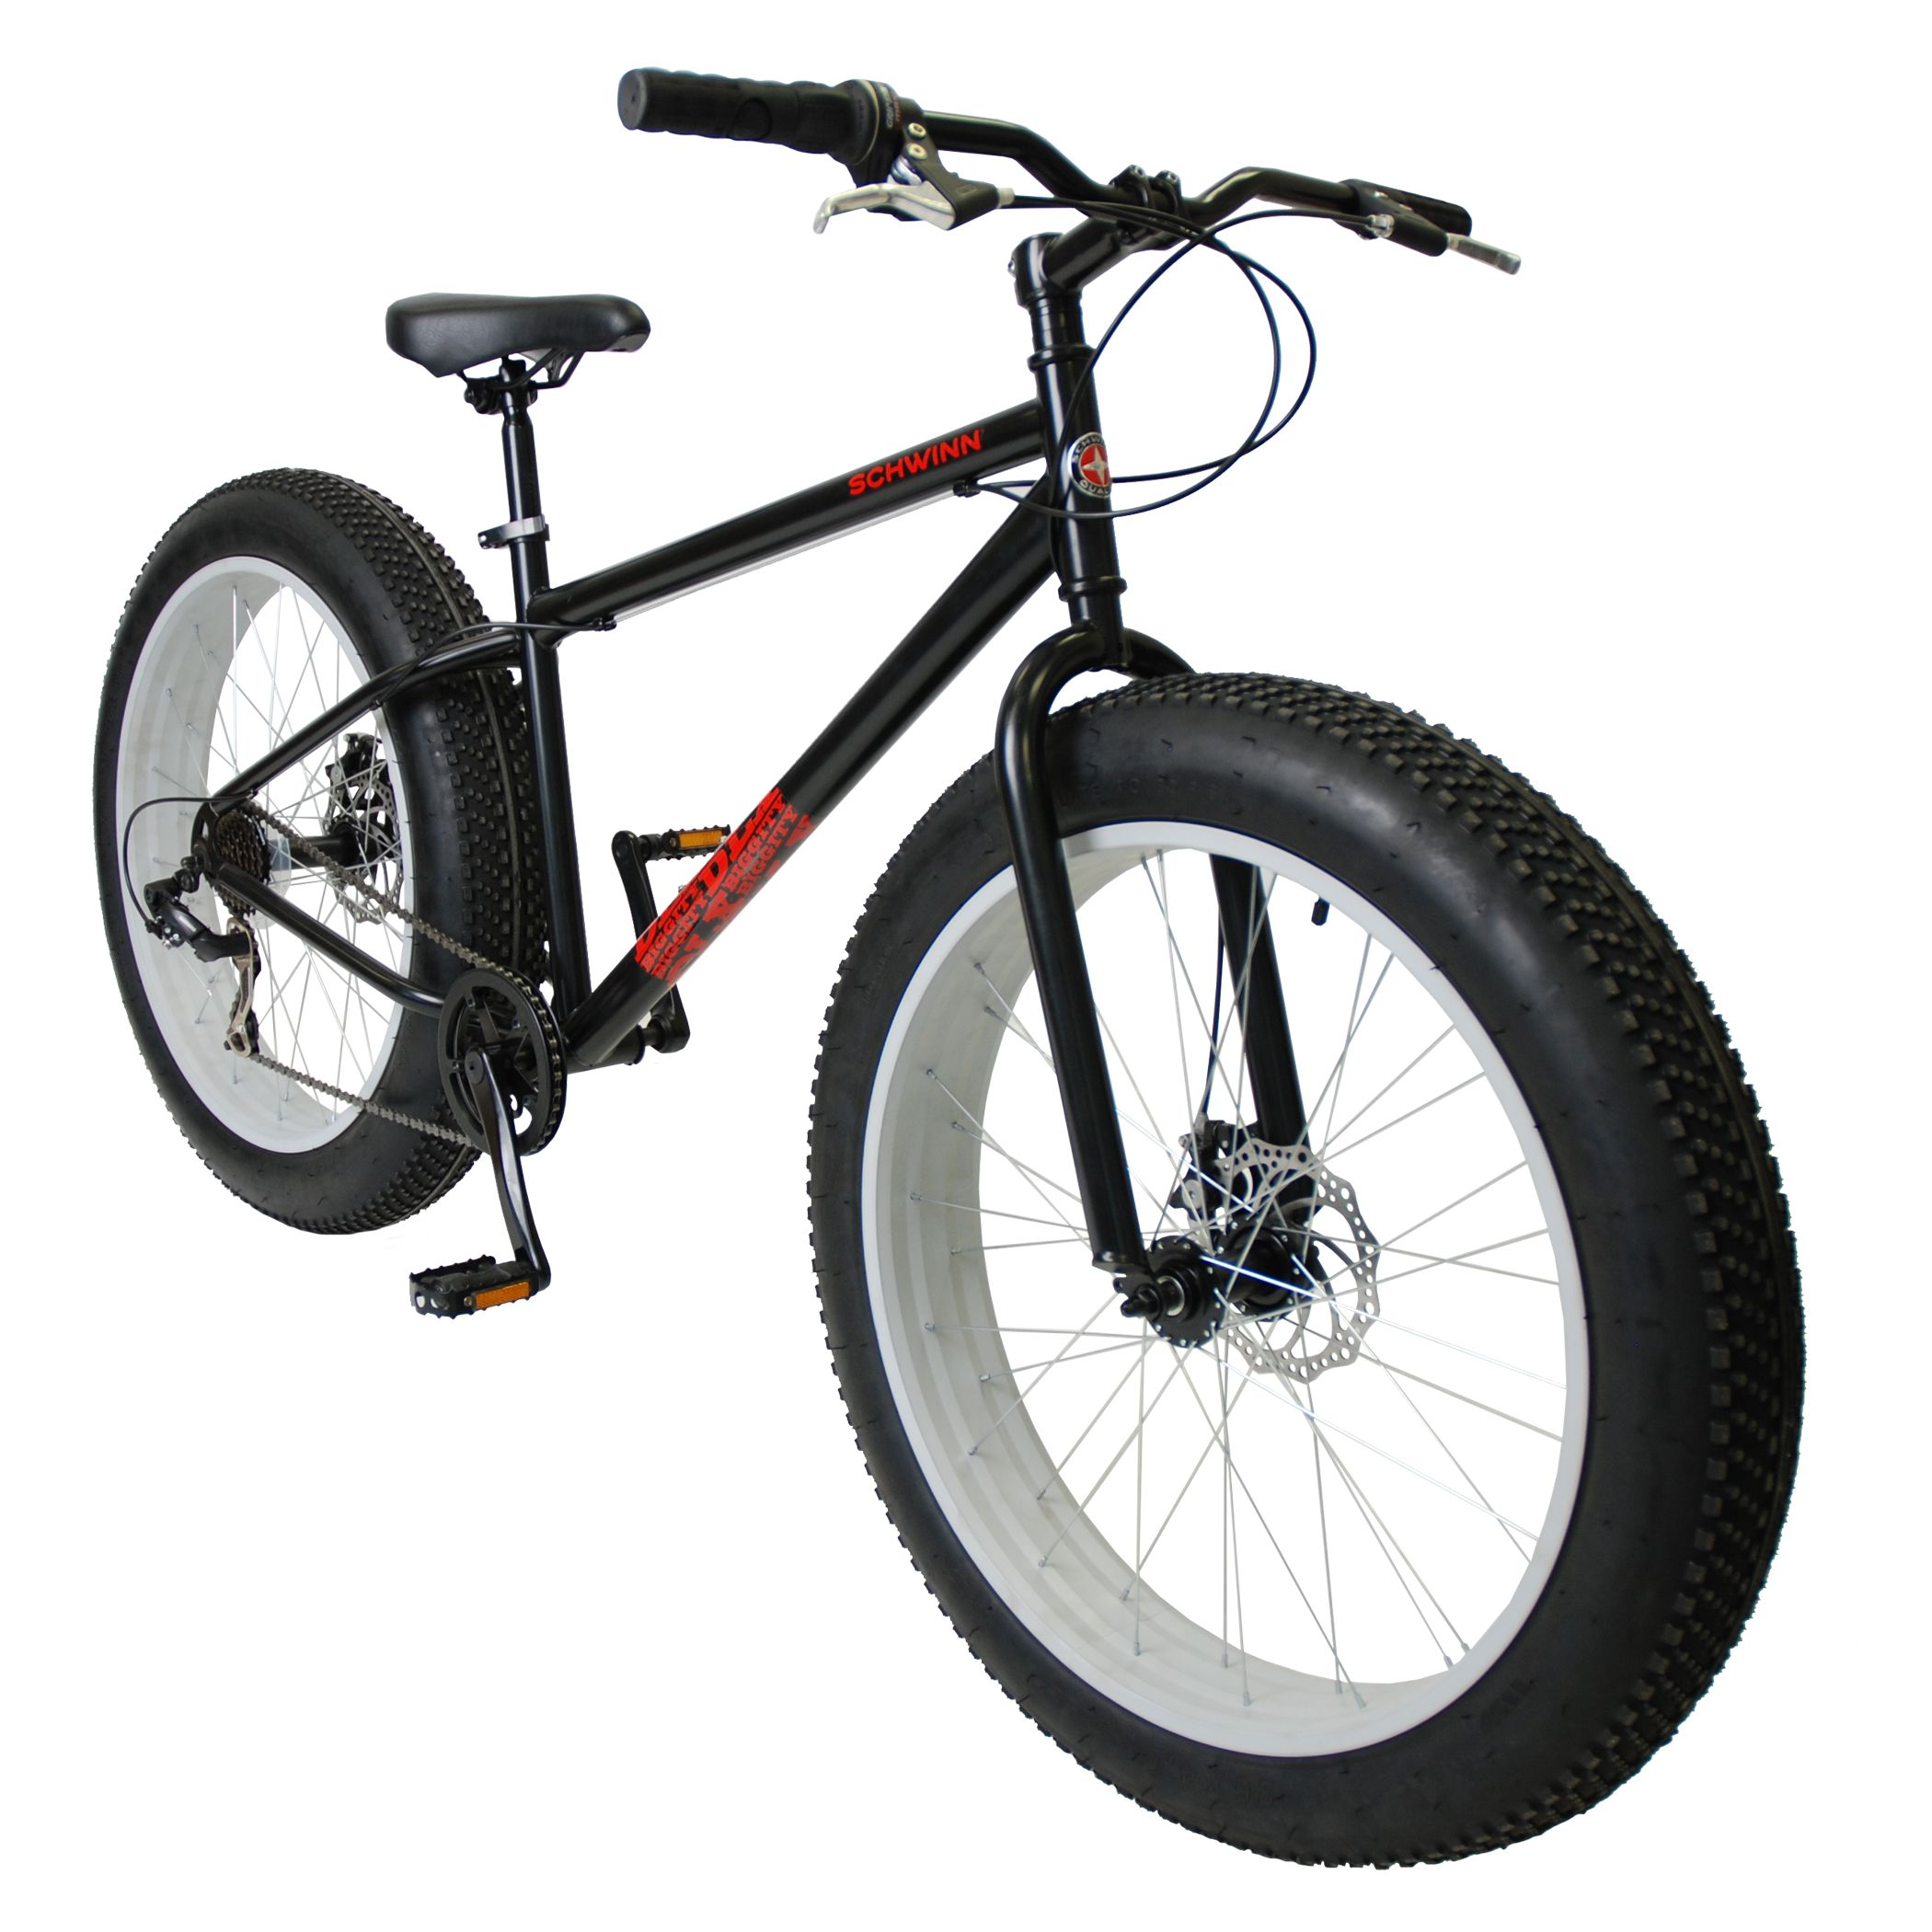 Schwinn Biggity 26 Fat Bike Design Model Year 2015 Sold At